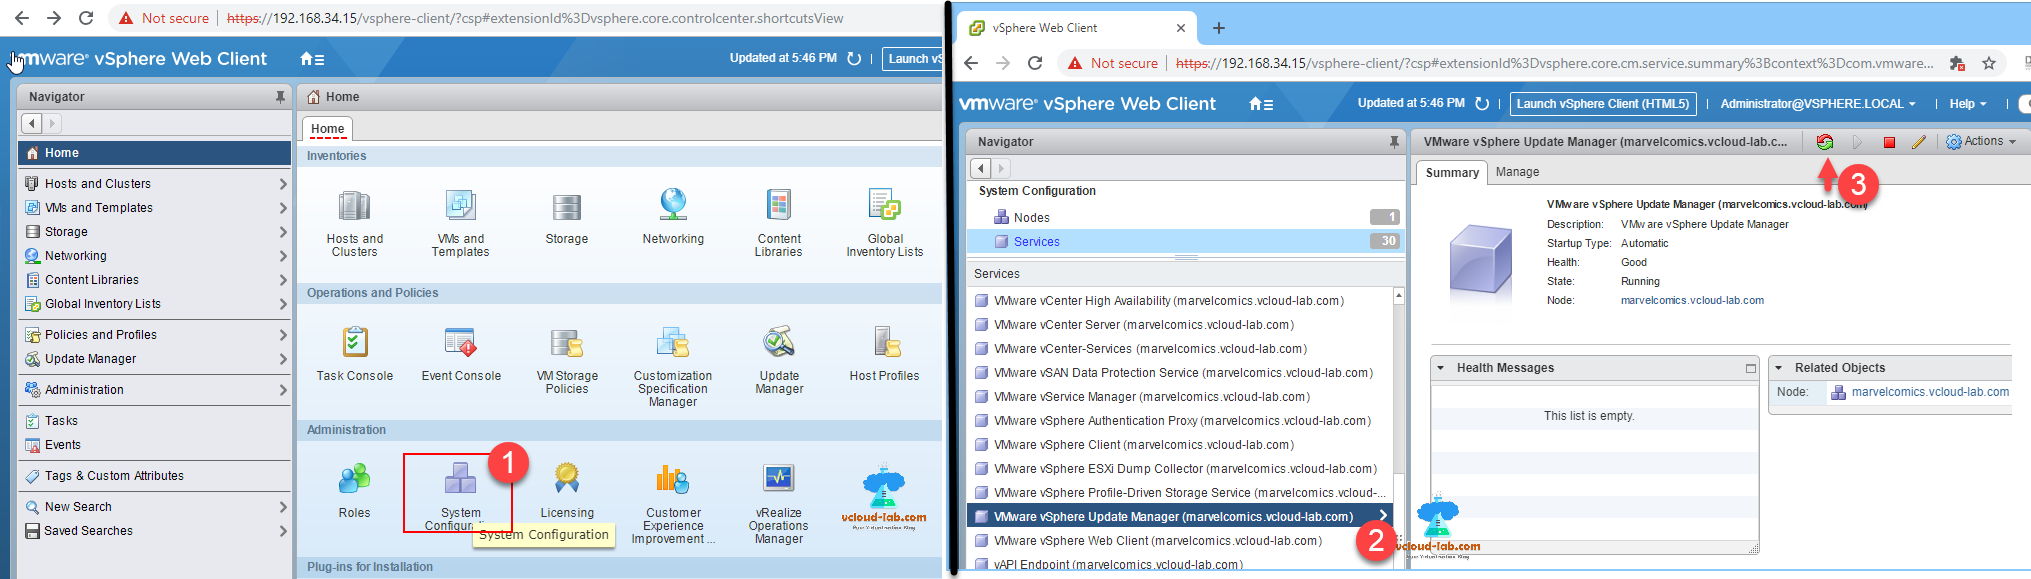 Configure the VMWare Update Manager Proxy Settings using